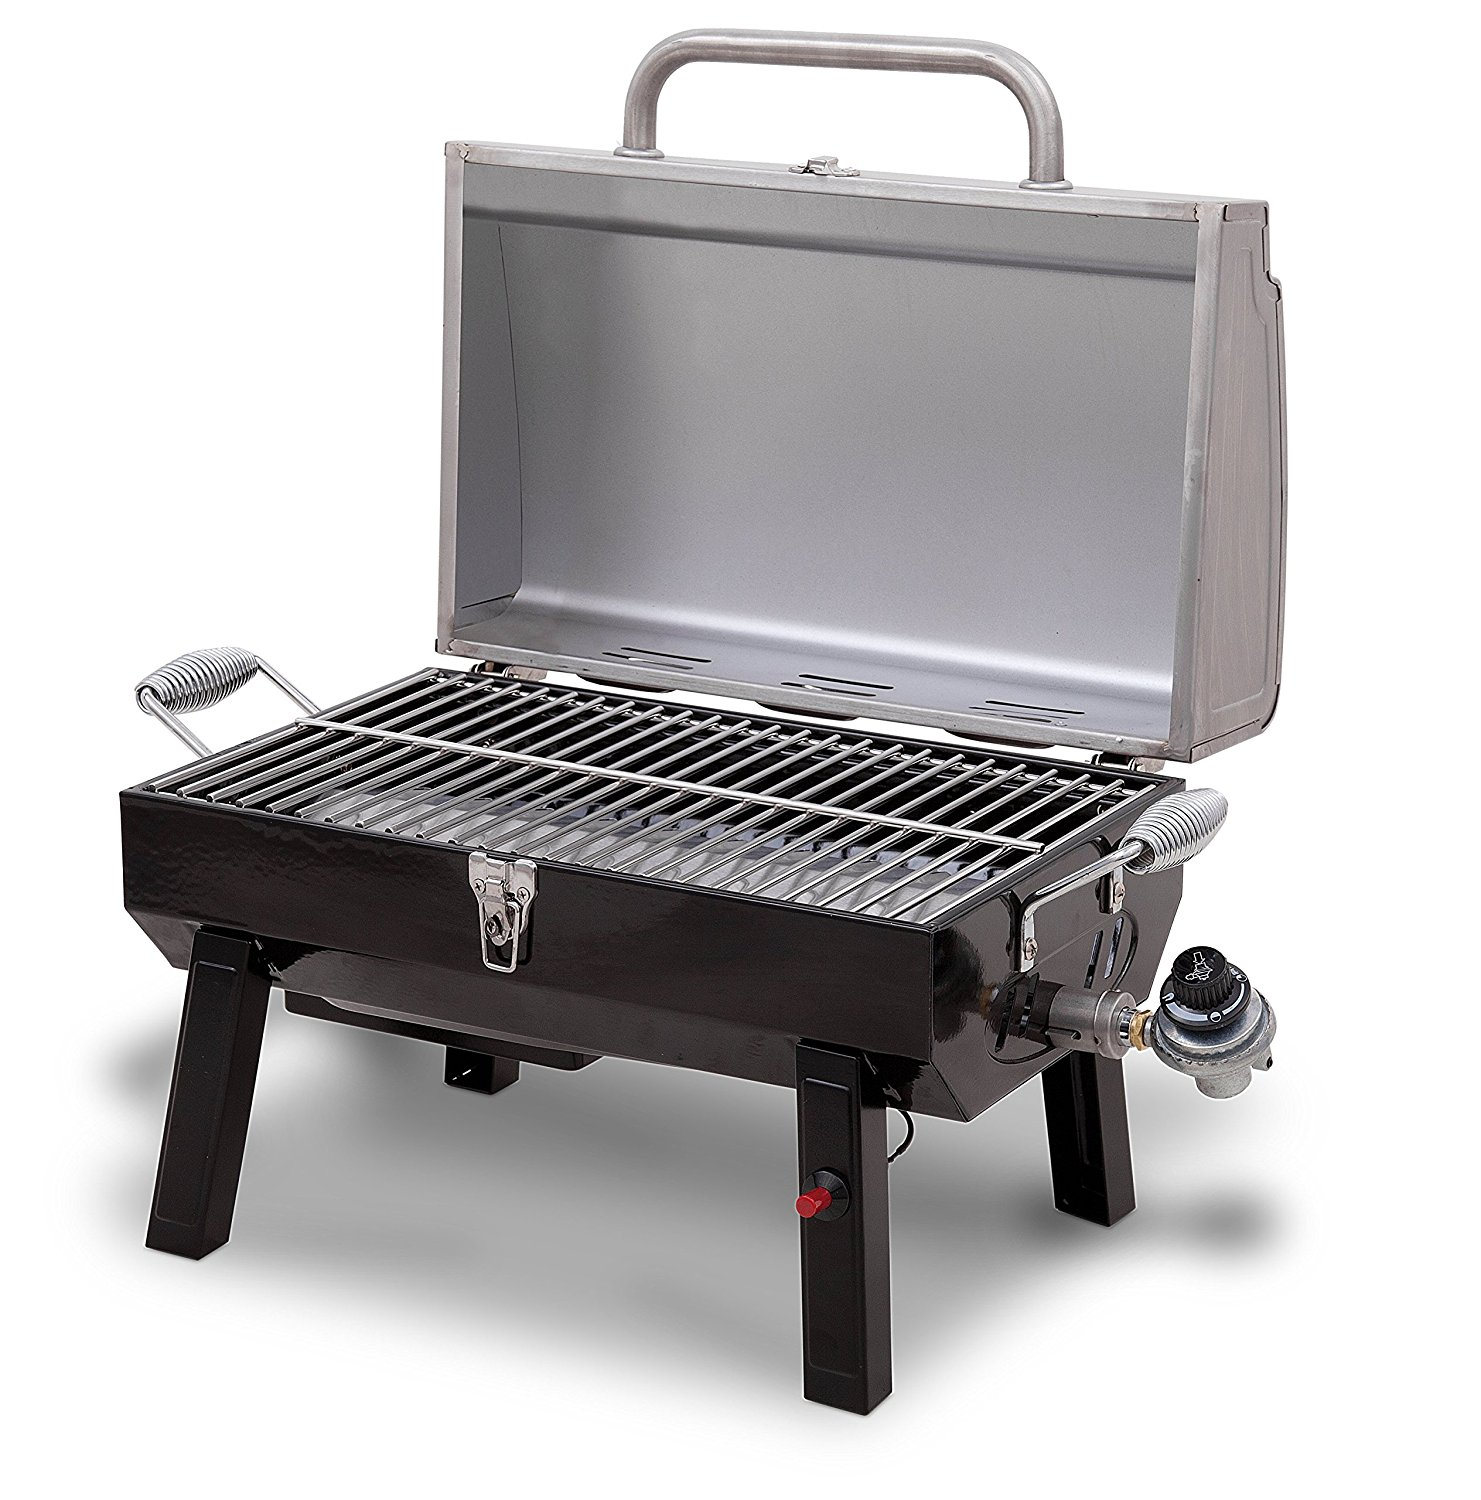 Broil Gasgrill Char Broil Stainless Steel Portable Gas Grill Only 39 44 Shipped